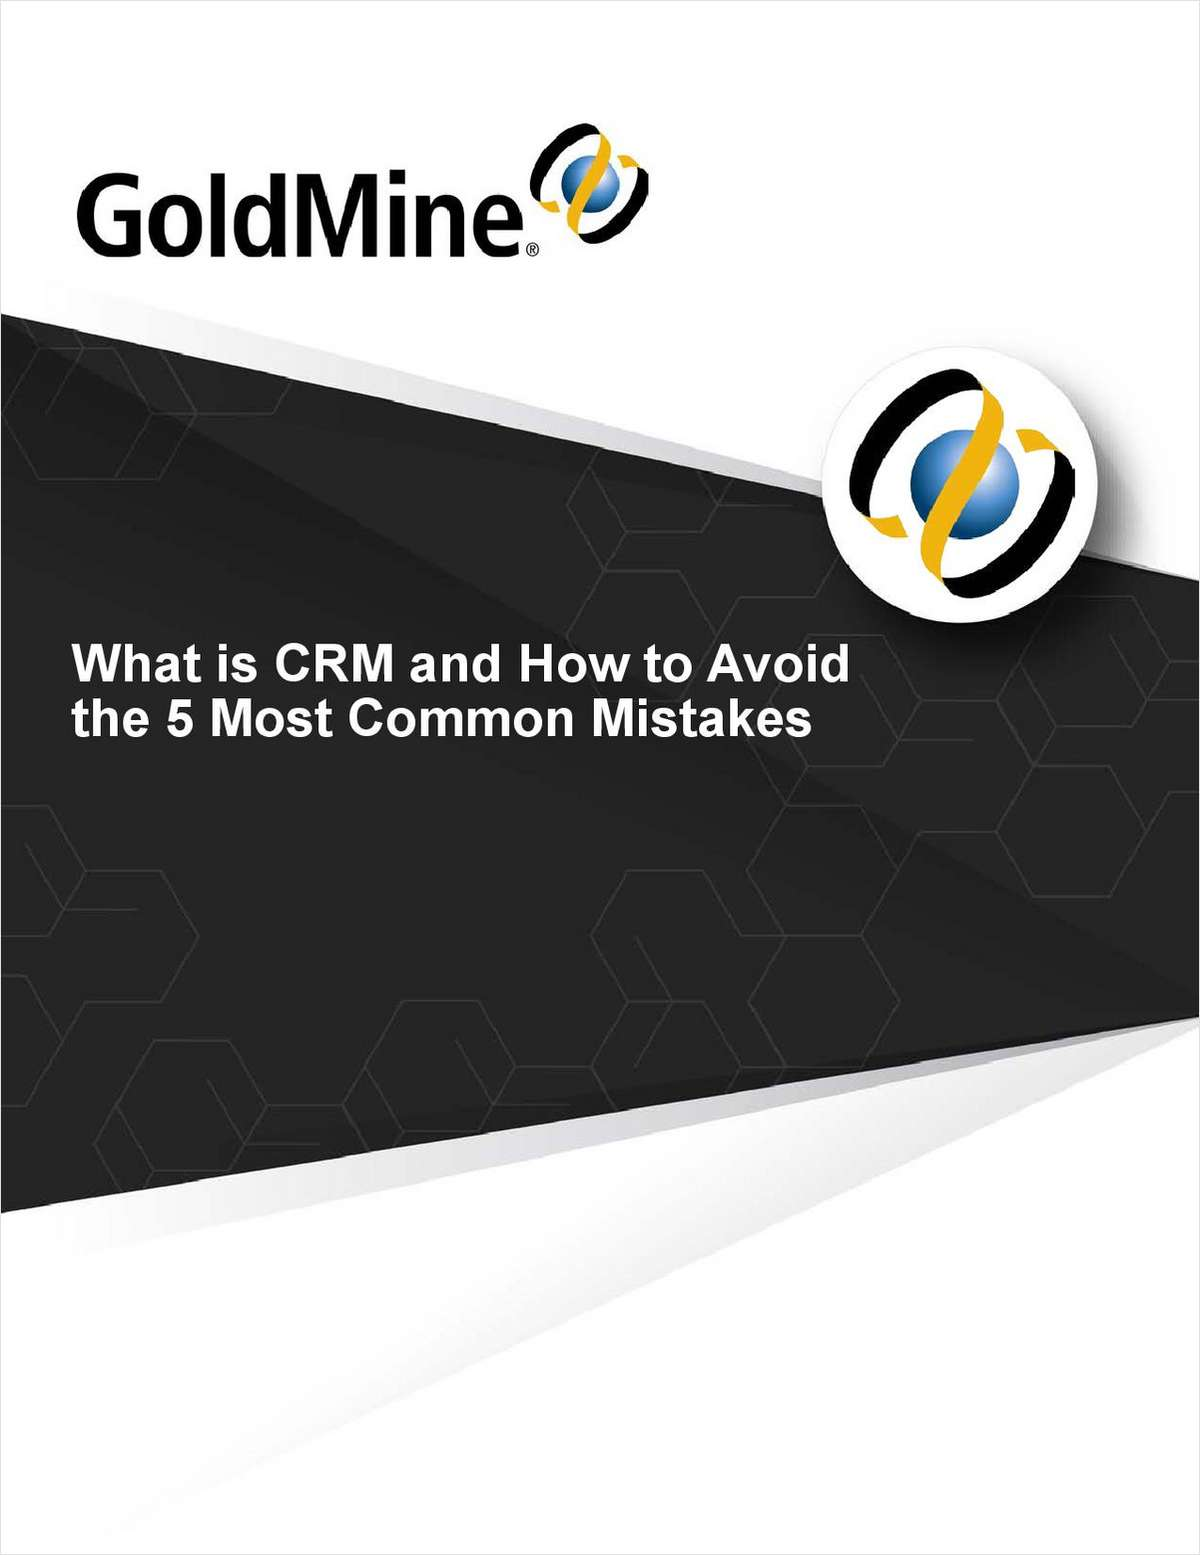 What is CRM and How to Avoid the 5 Most Common Mistakes